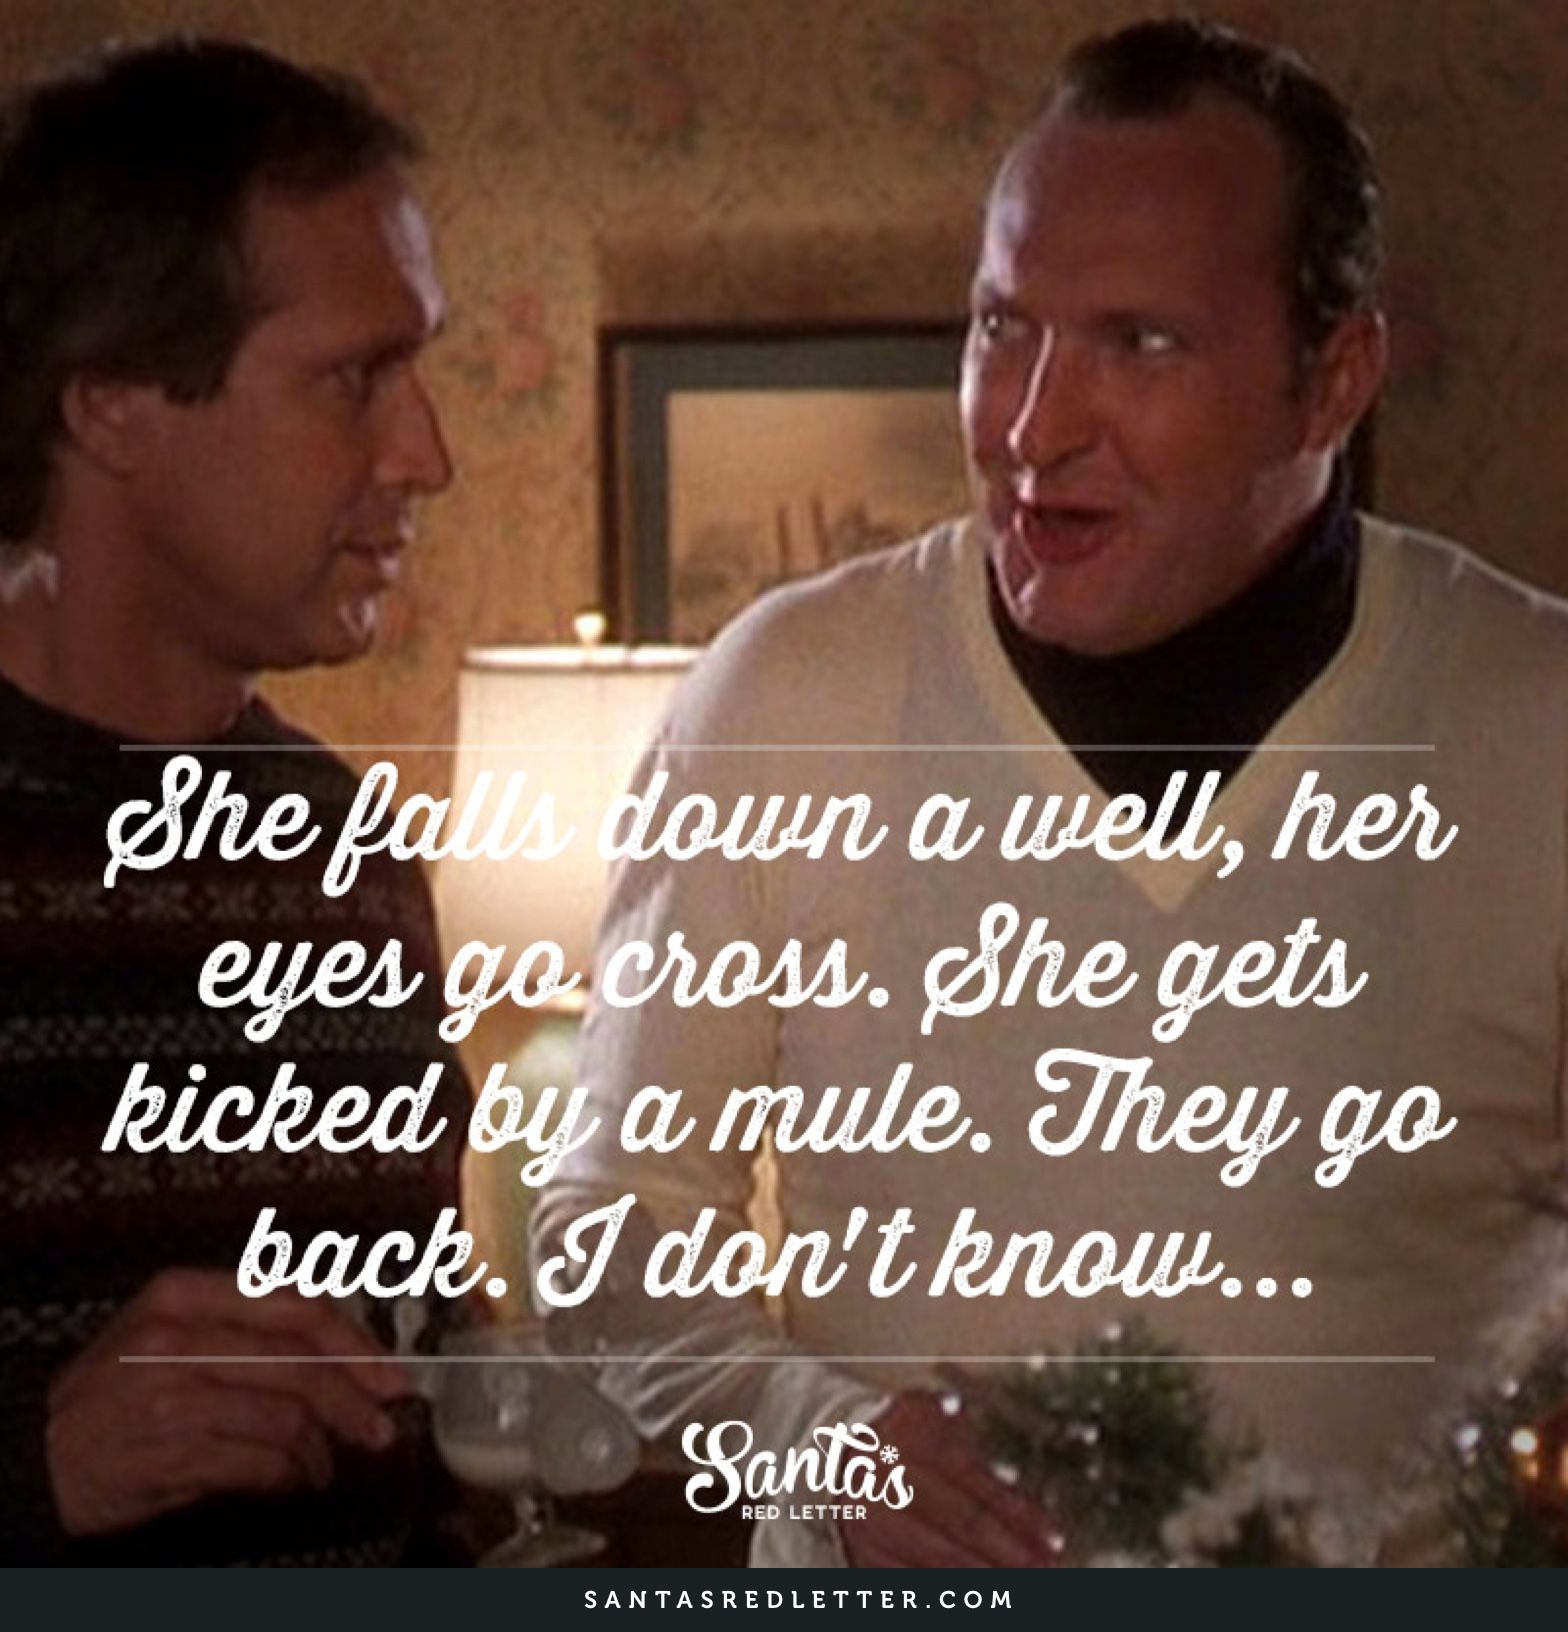 She Falls Down A Well Her Eyes Go Cross She Gets Kicked By A Mule They Go Back I Don T Christmas Vacation Quotes Christmas Vacation Movie Vacation Quotes